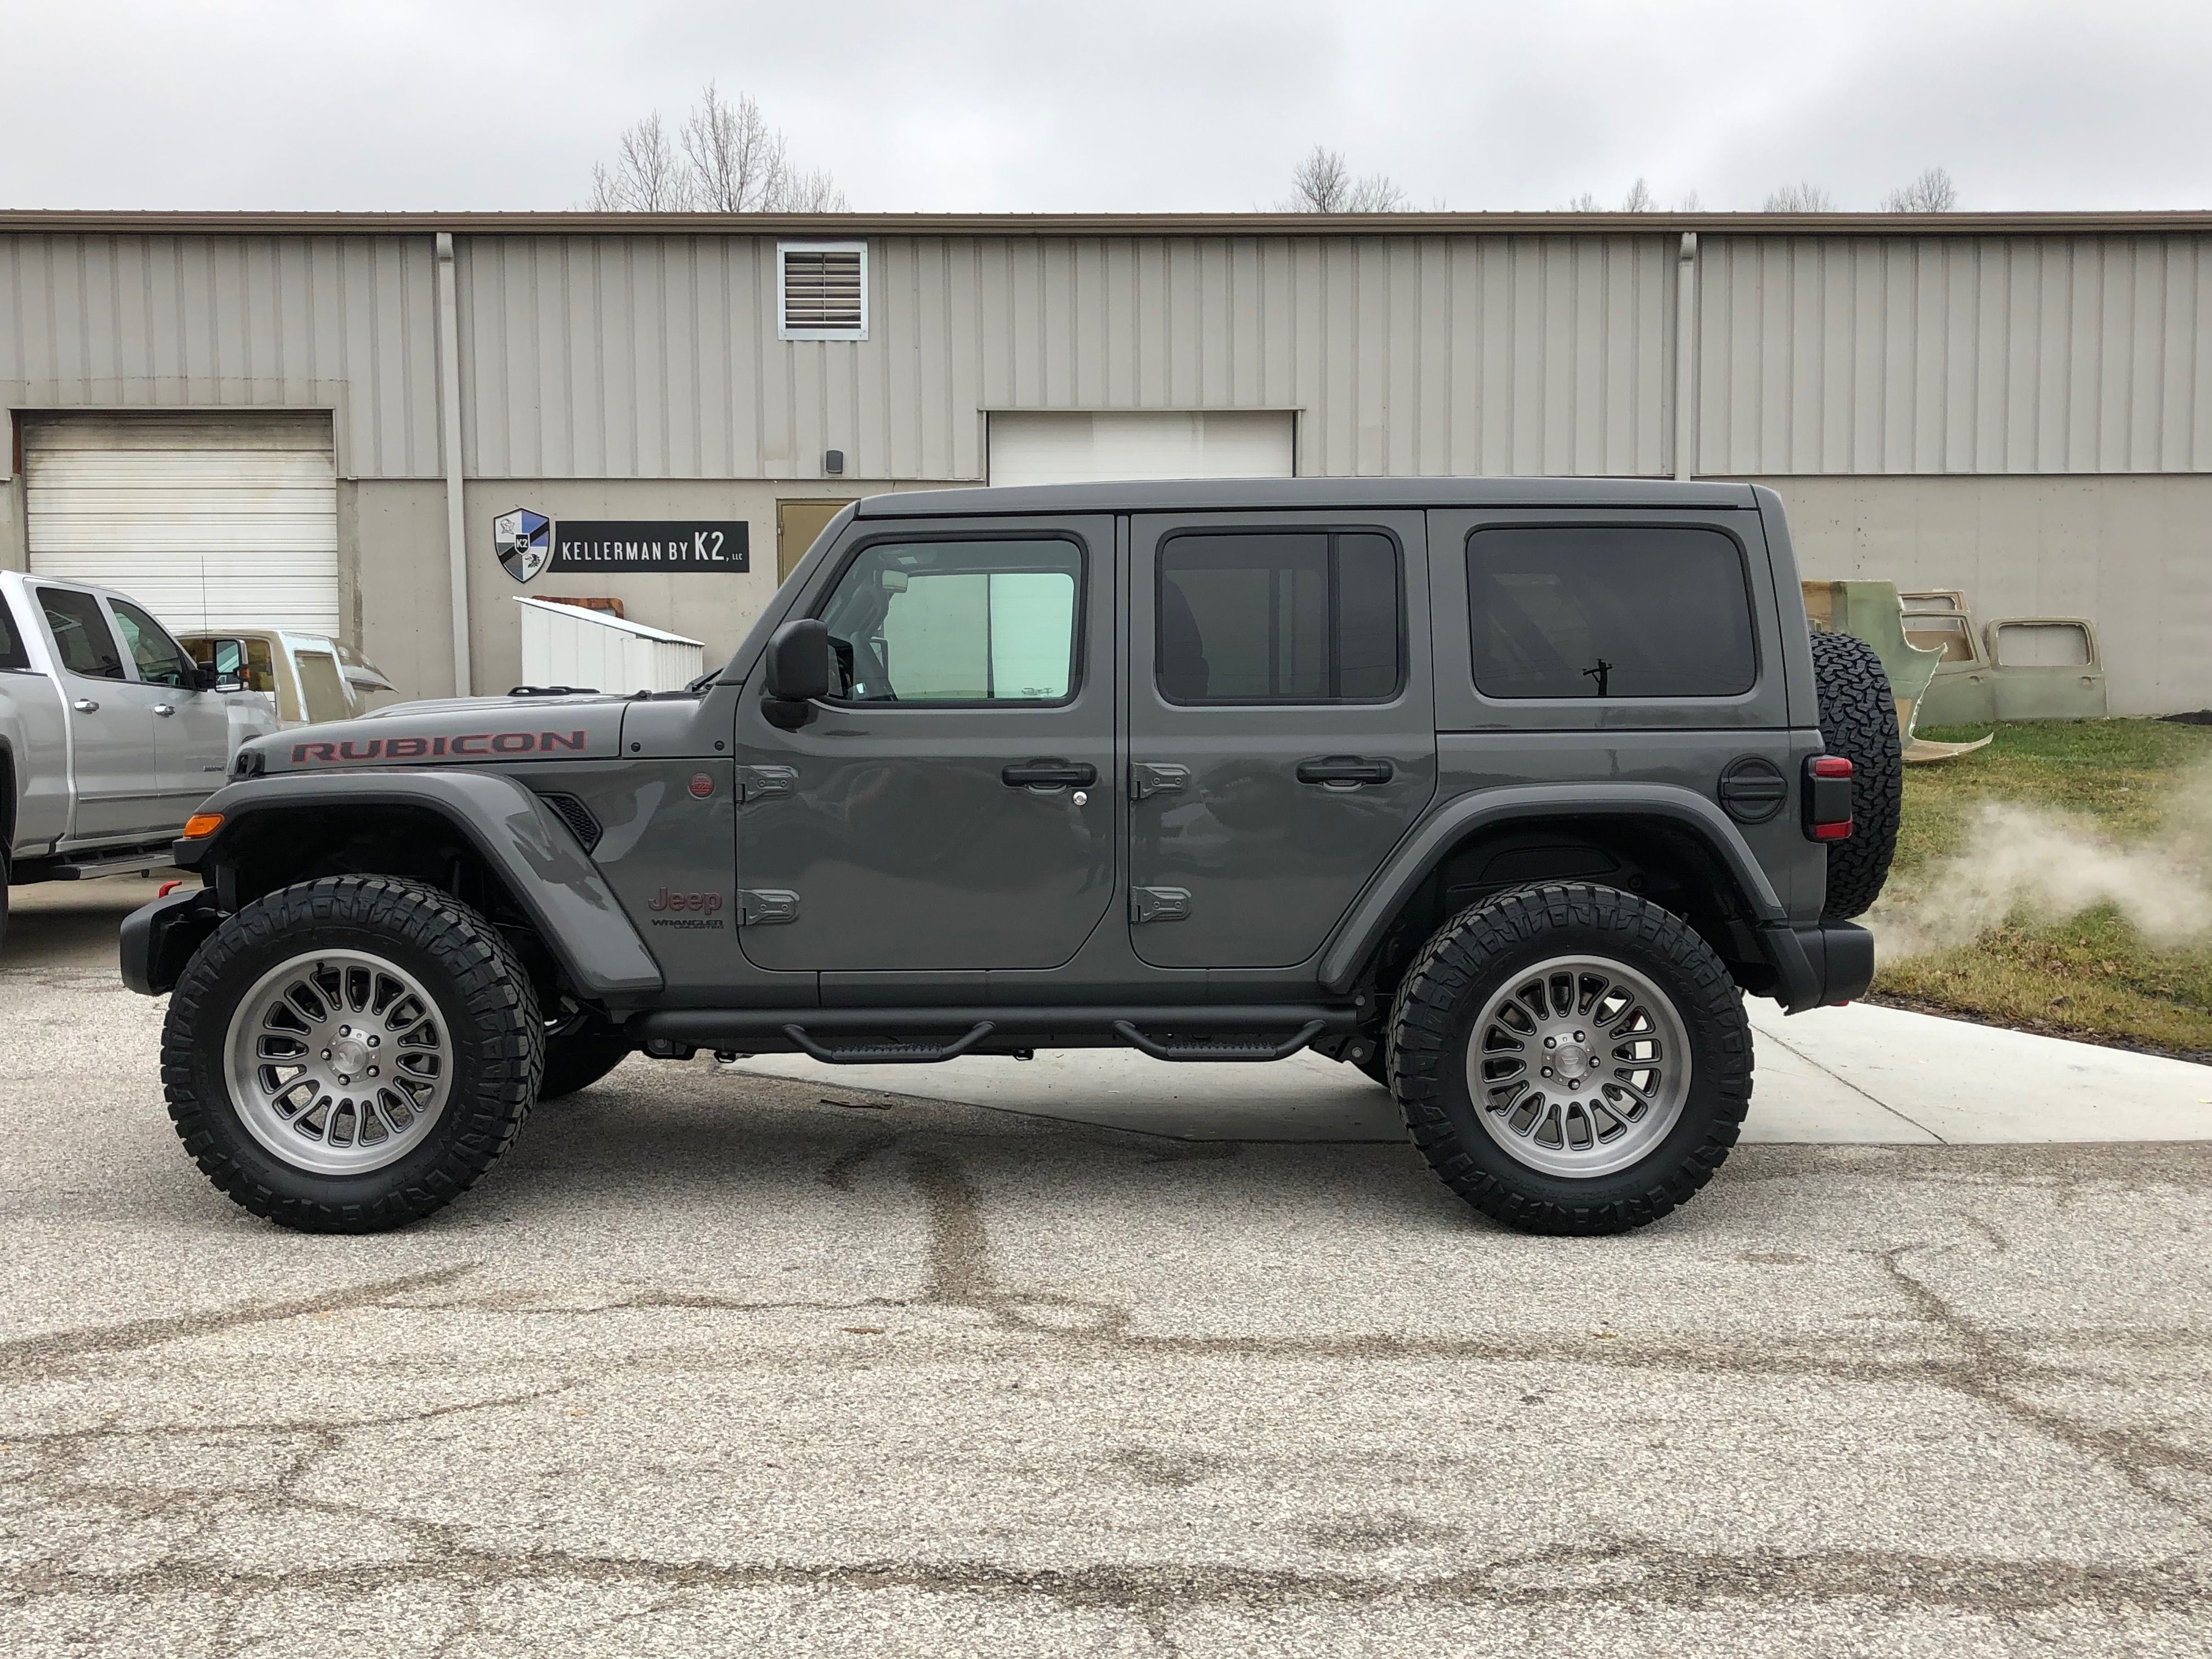 2019 Jeep Wrangler Rubicon Jl Sting Gray Nfab Step Bars 35 Nittos